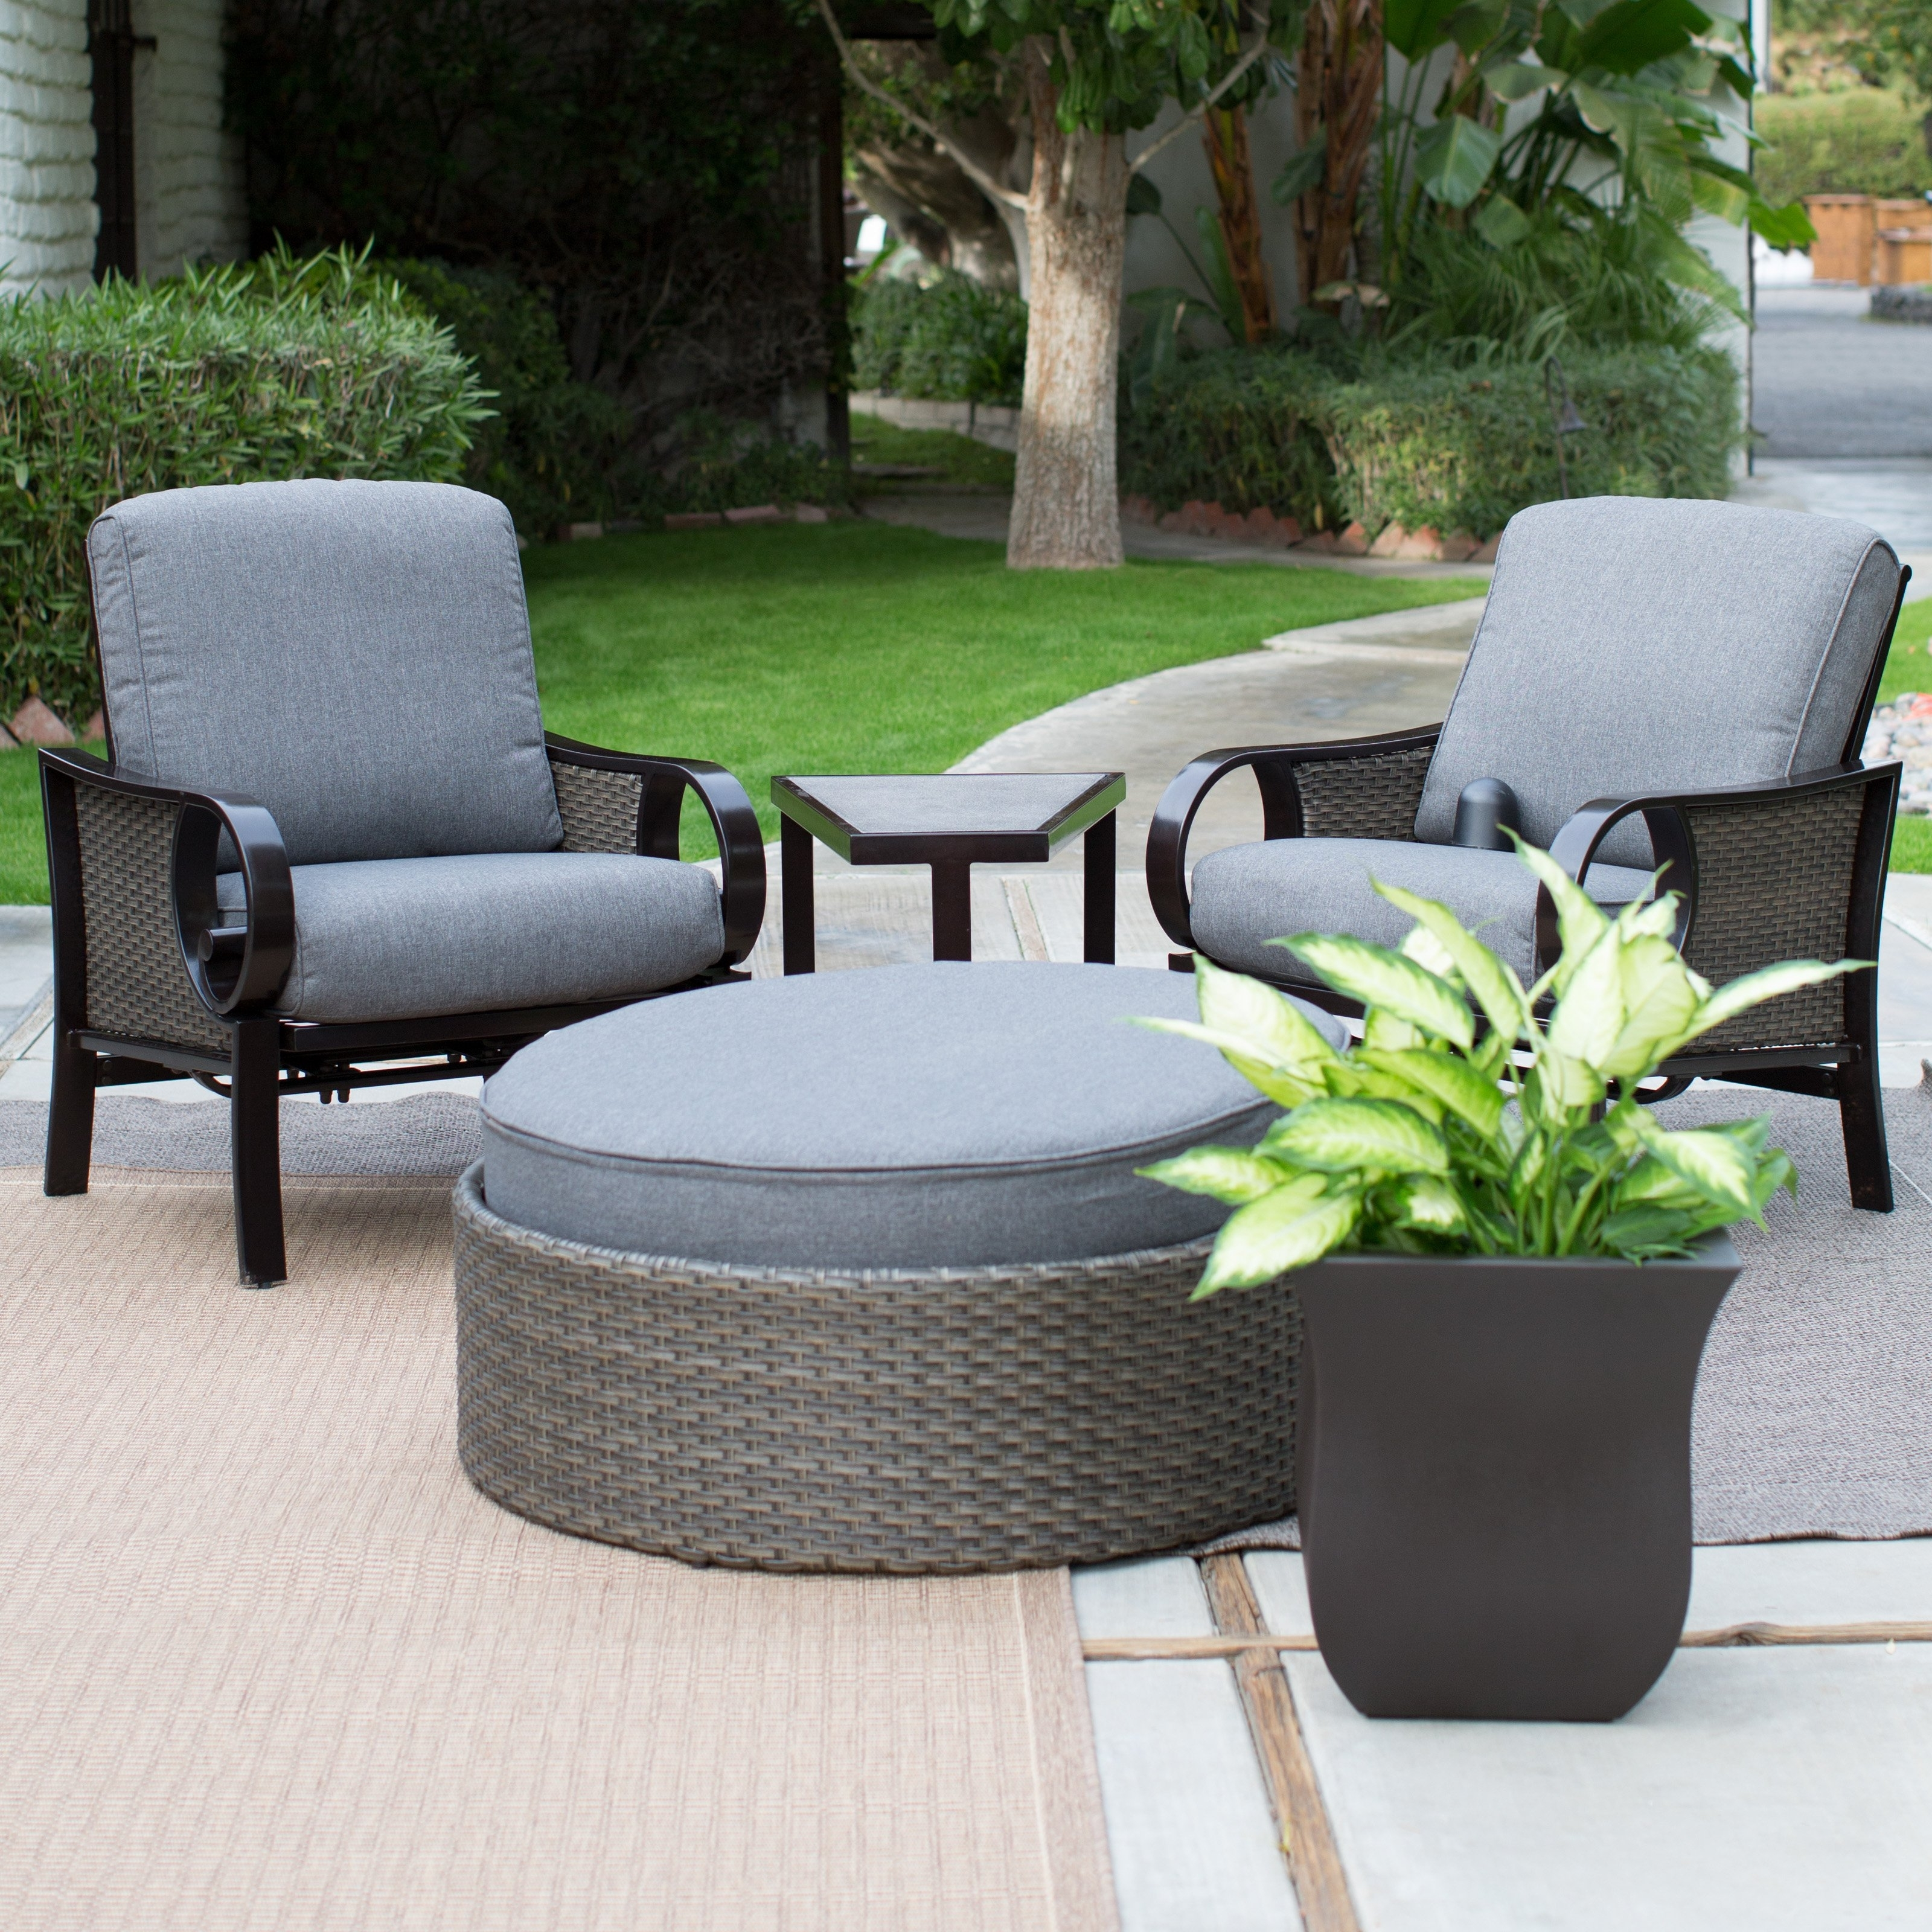 22 Creative Patio Conversation Sets With Ottoman – Pixelmari Throughout Well Known Patio Conversation Sets With Ottoman (View 10 of 15)